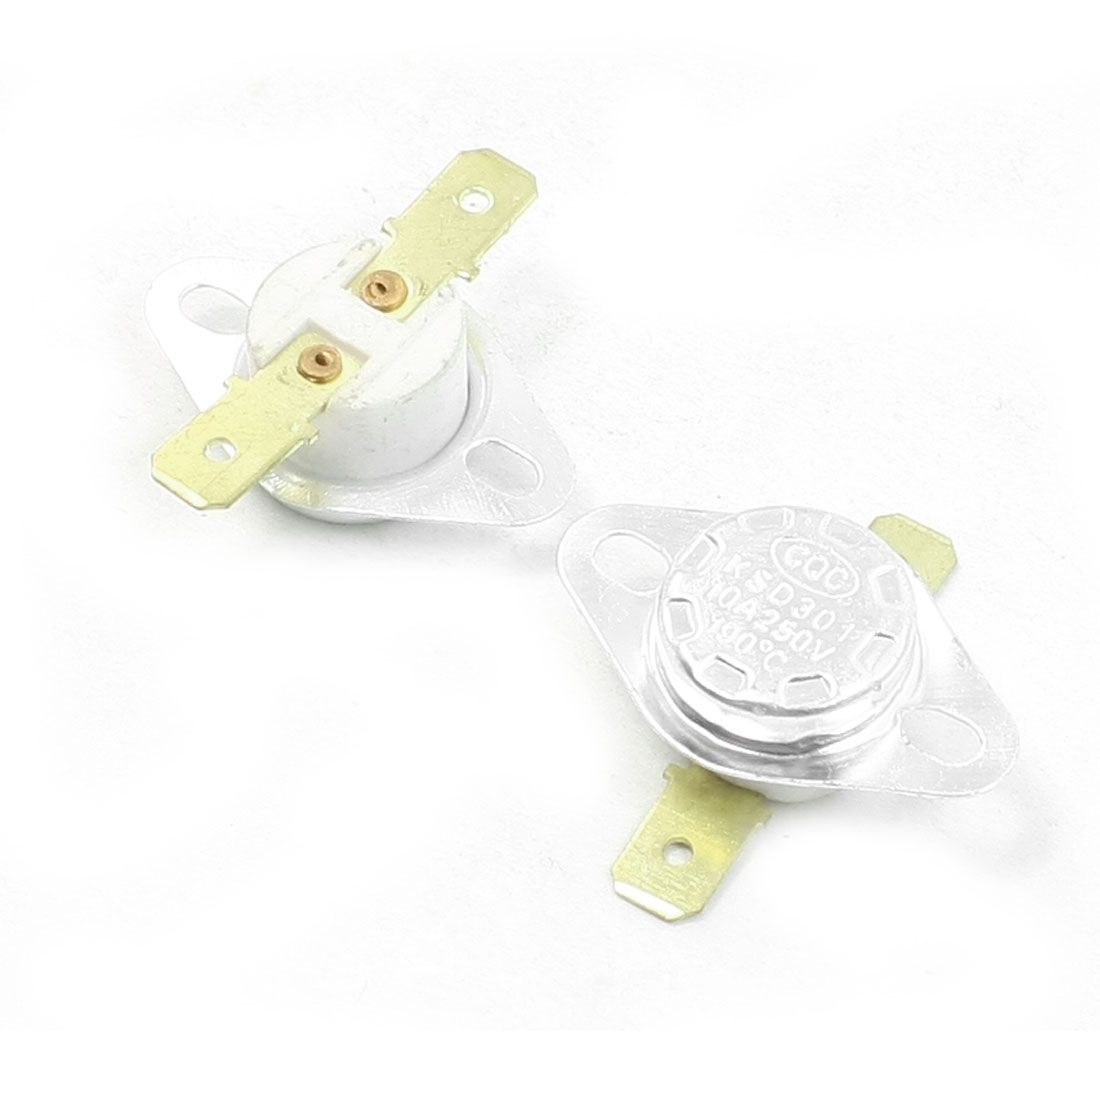 250VAC/10A 190C NC Ceramic Temperature Controller Thermostat KSD301 2 Pcs